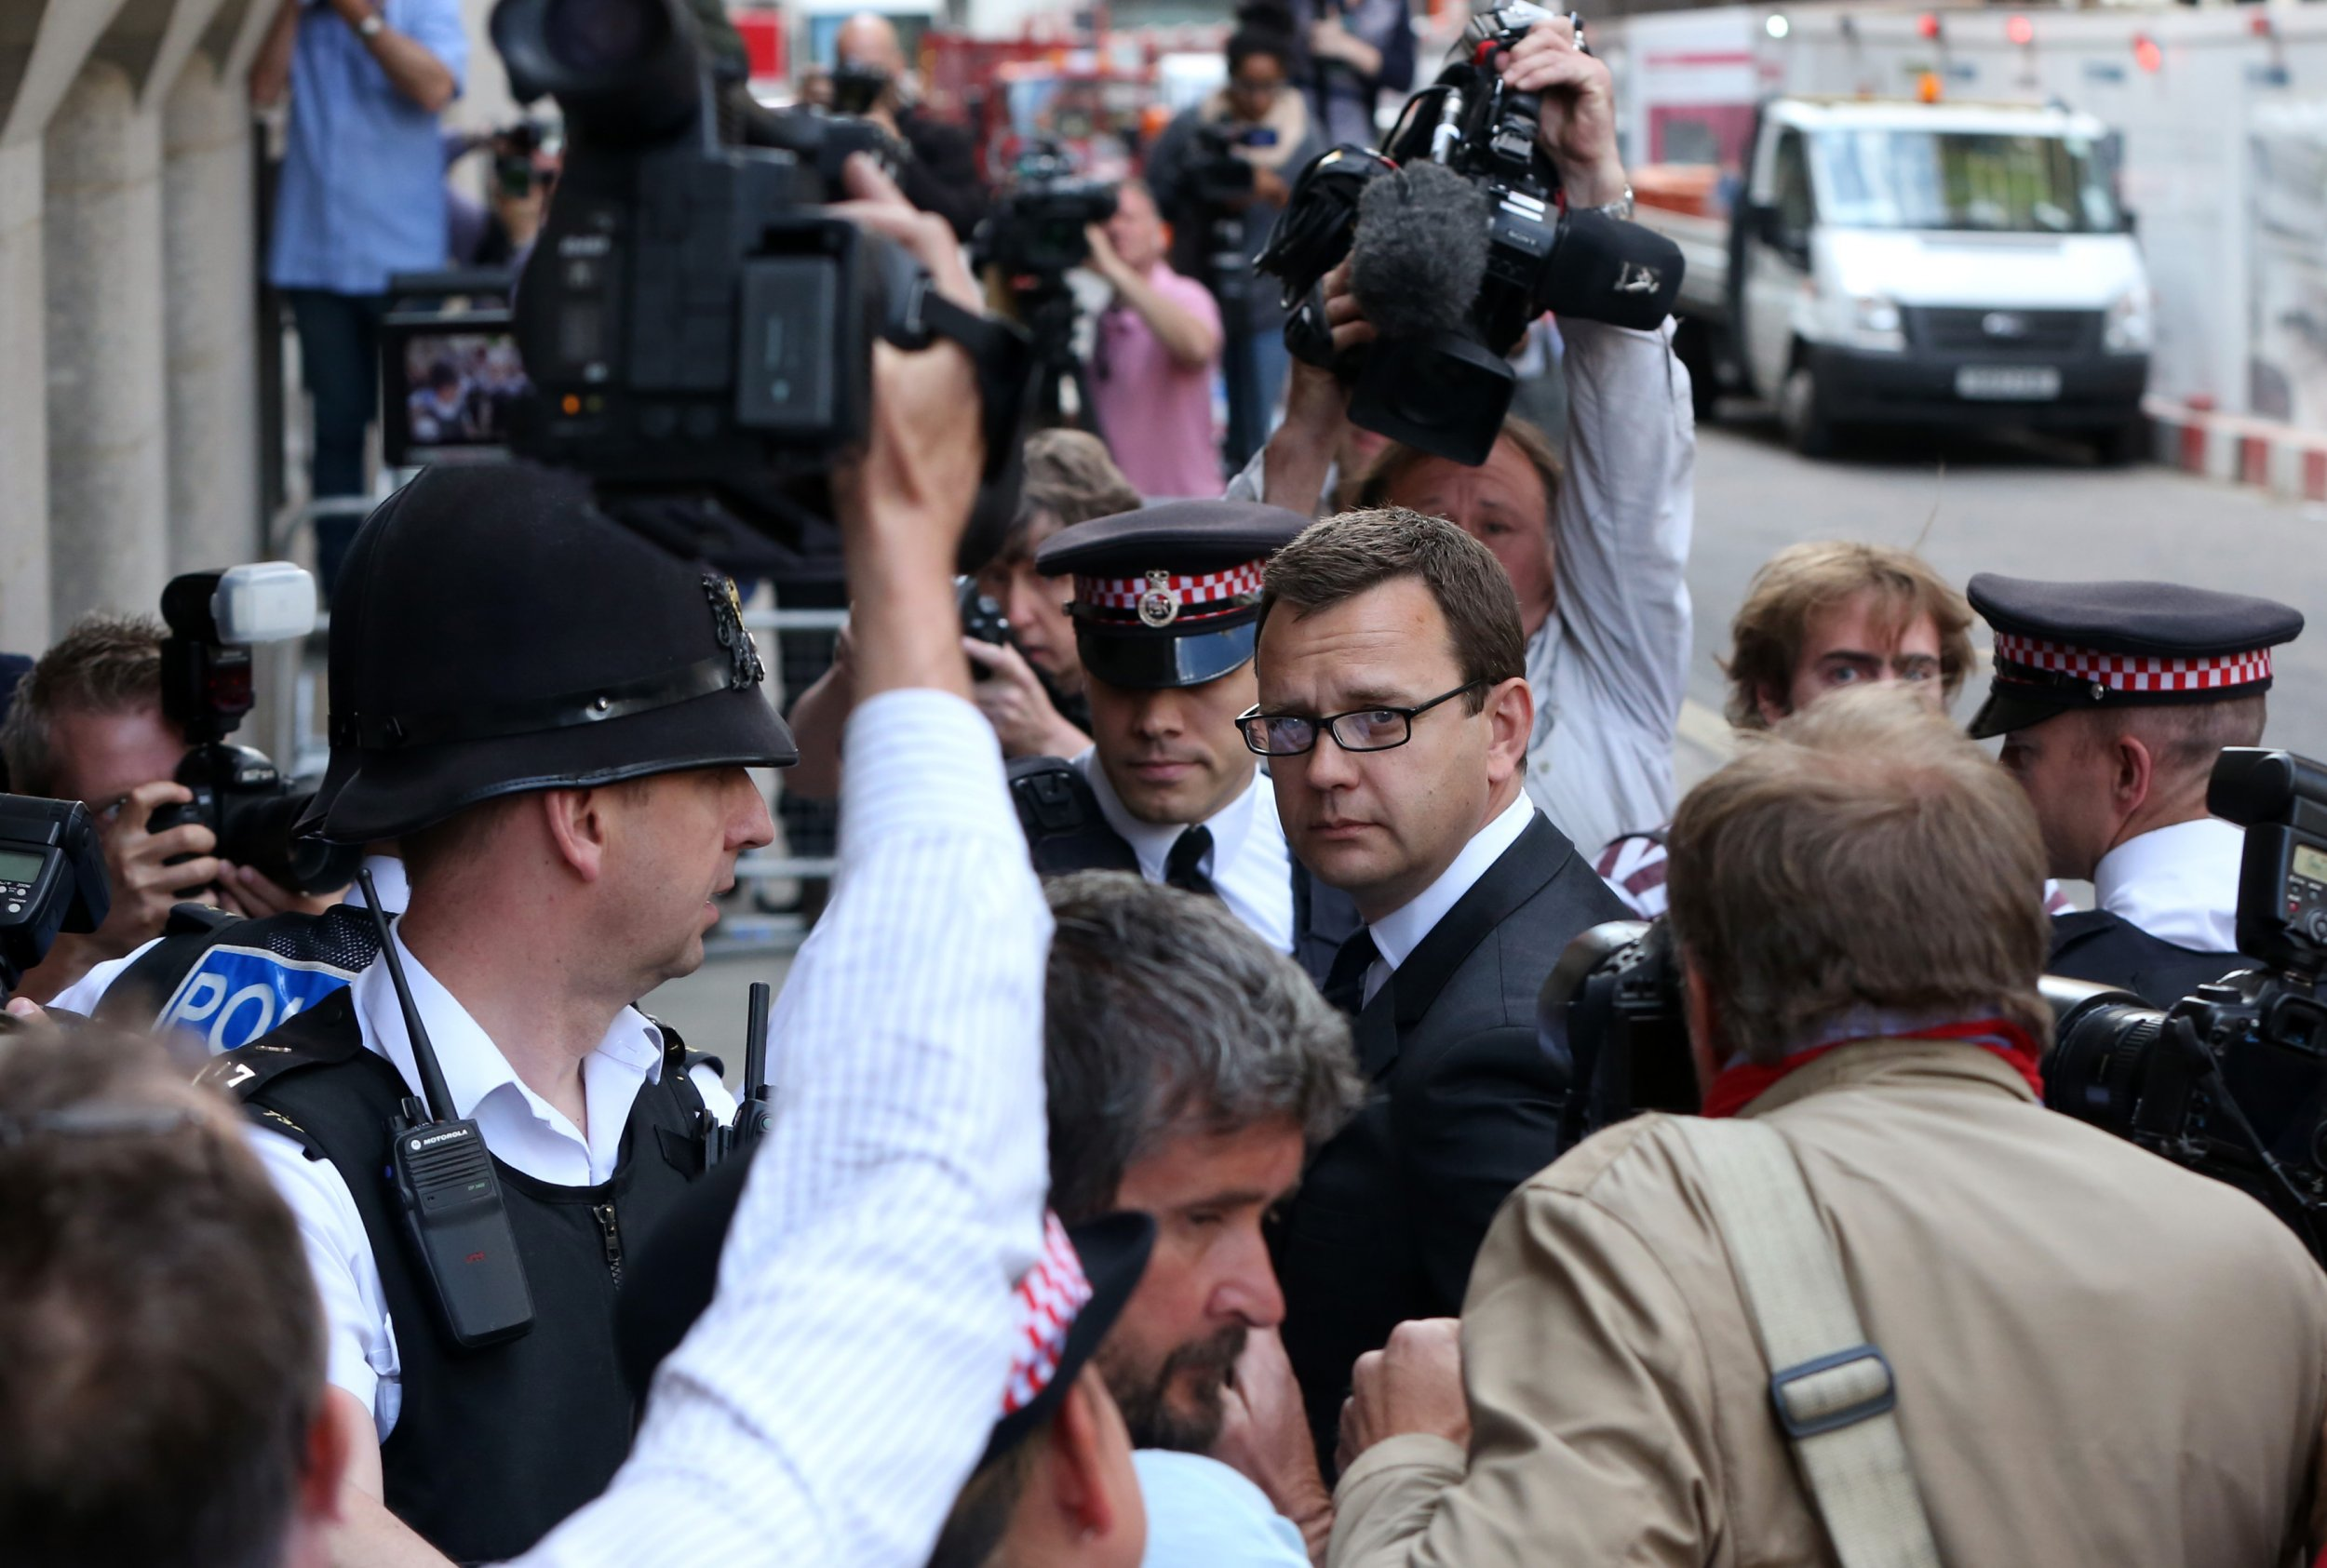 Andy Coulson arrives at the Old Bailey for sentencing